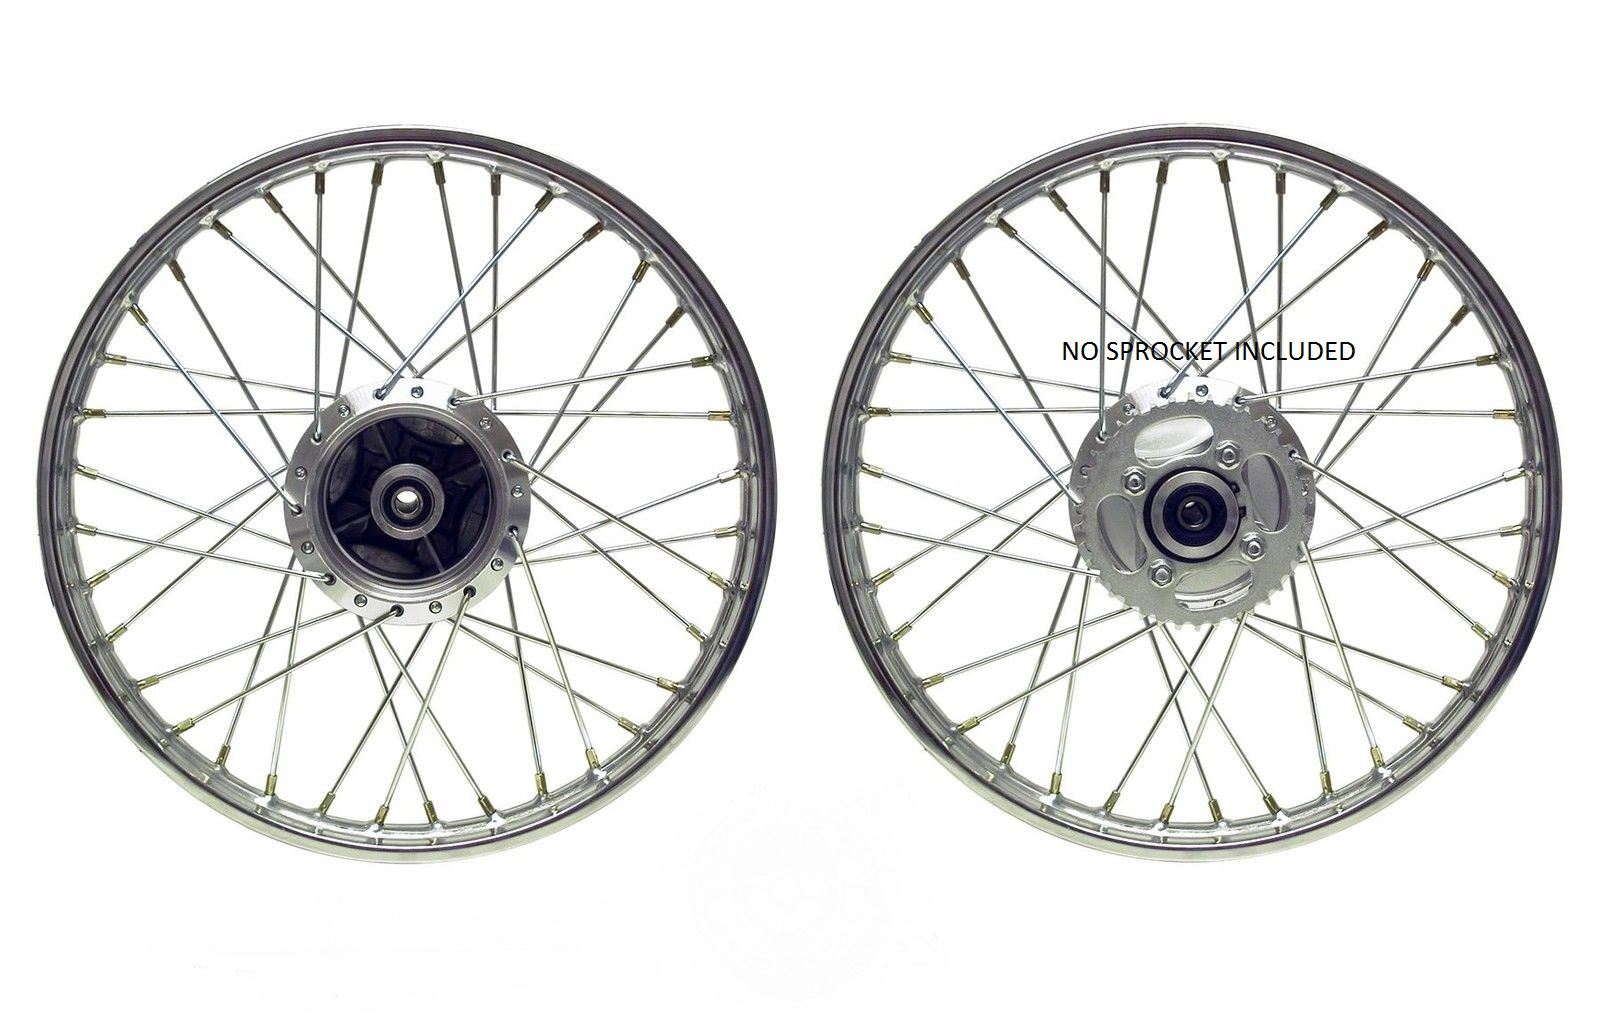 Honda Cg125 Rear Wheel 18 With Outer Of Hub 160 Mm